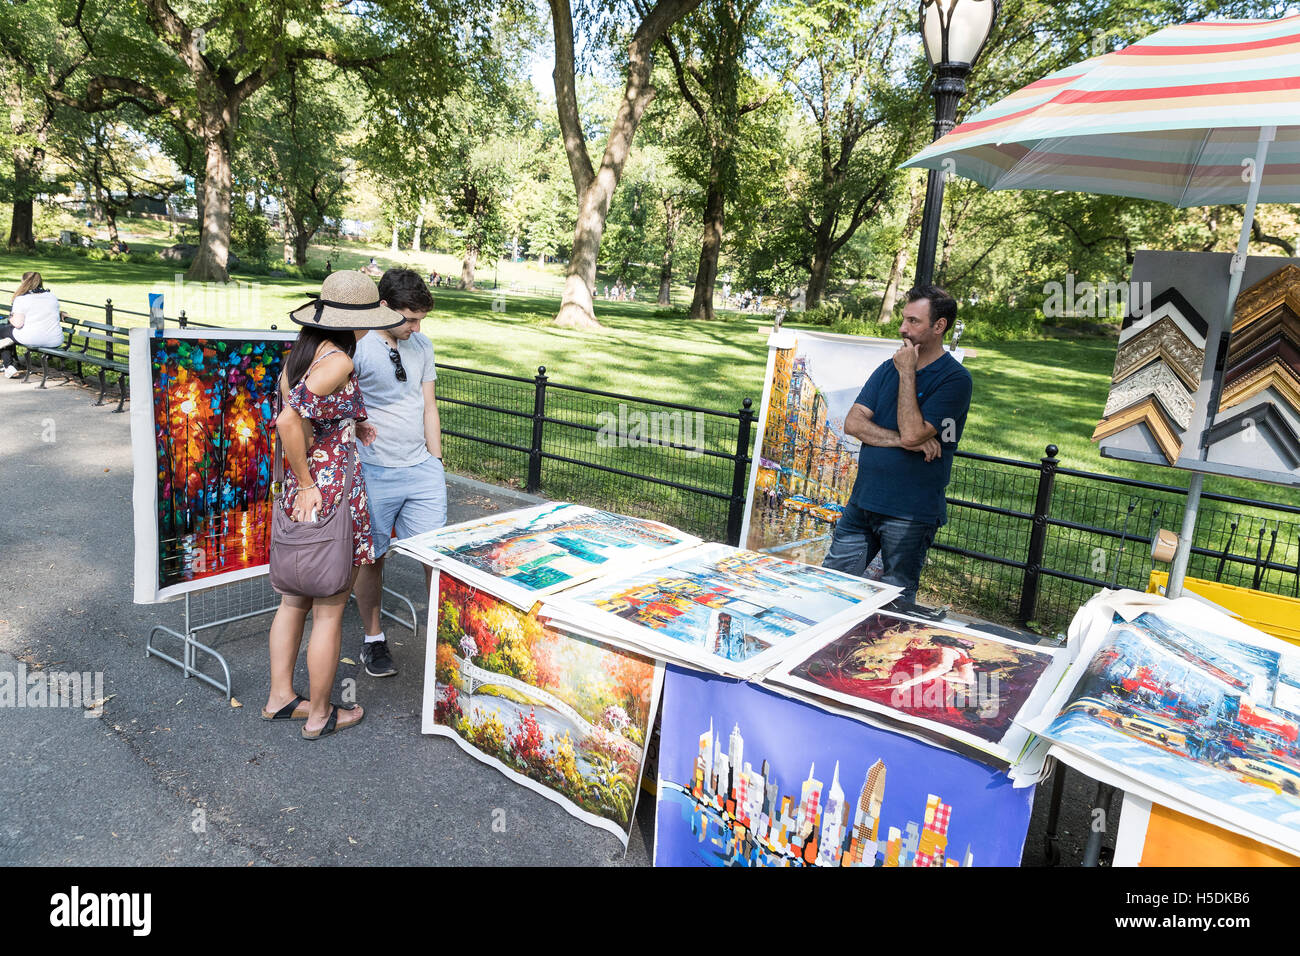 Street vendor selling art canvas prints paintings to for Sell art prints online